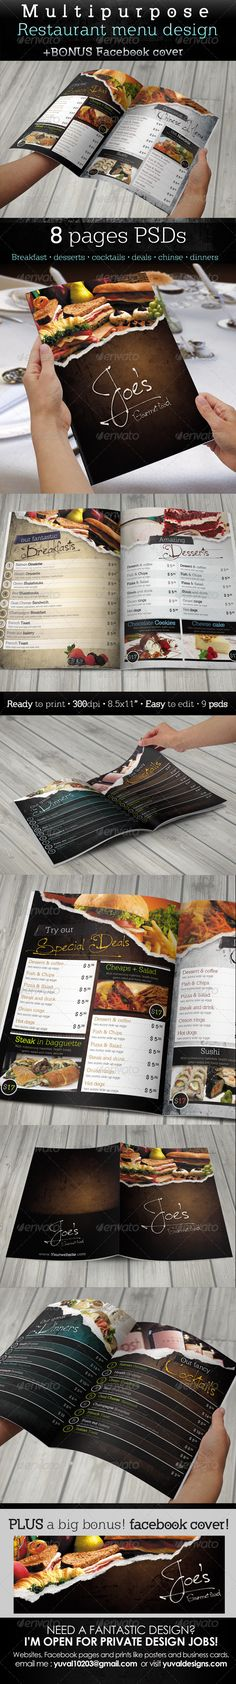 Multipurpose Restaurant Menu Template | Print Ad Templates